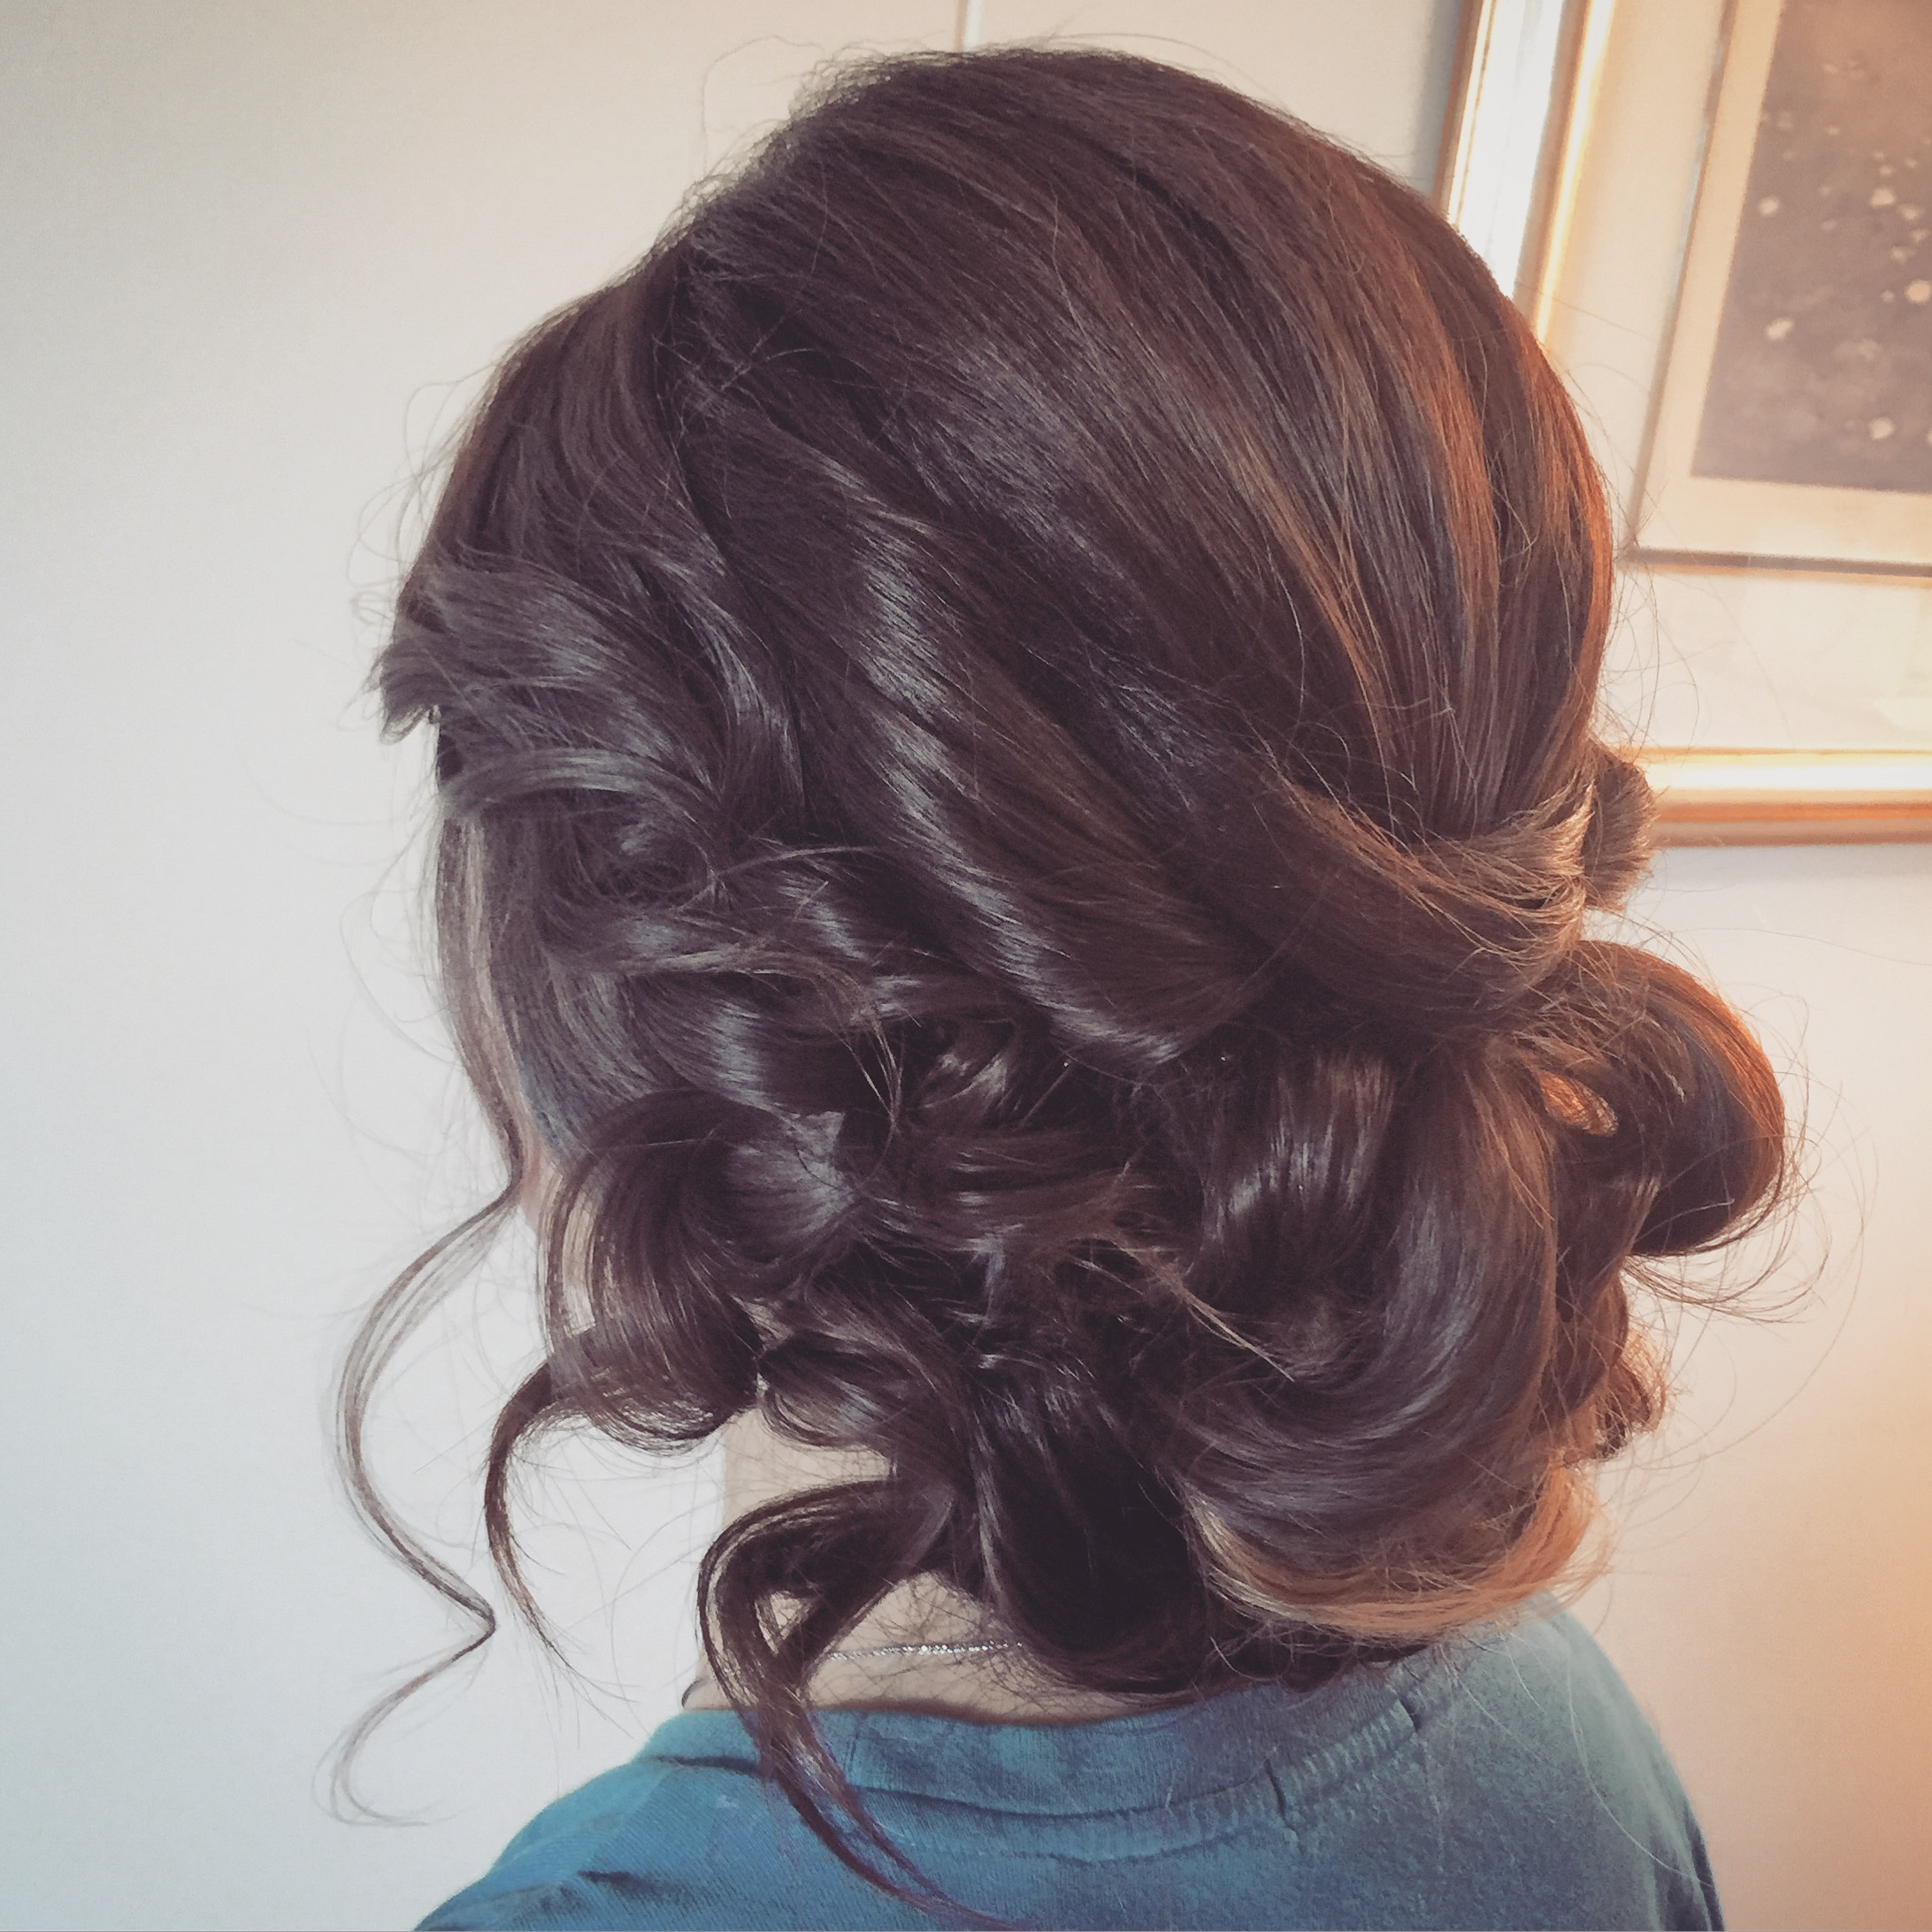 Formal graduation wedding hairstyle